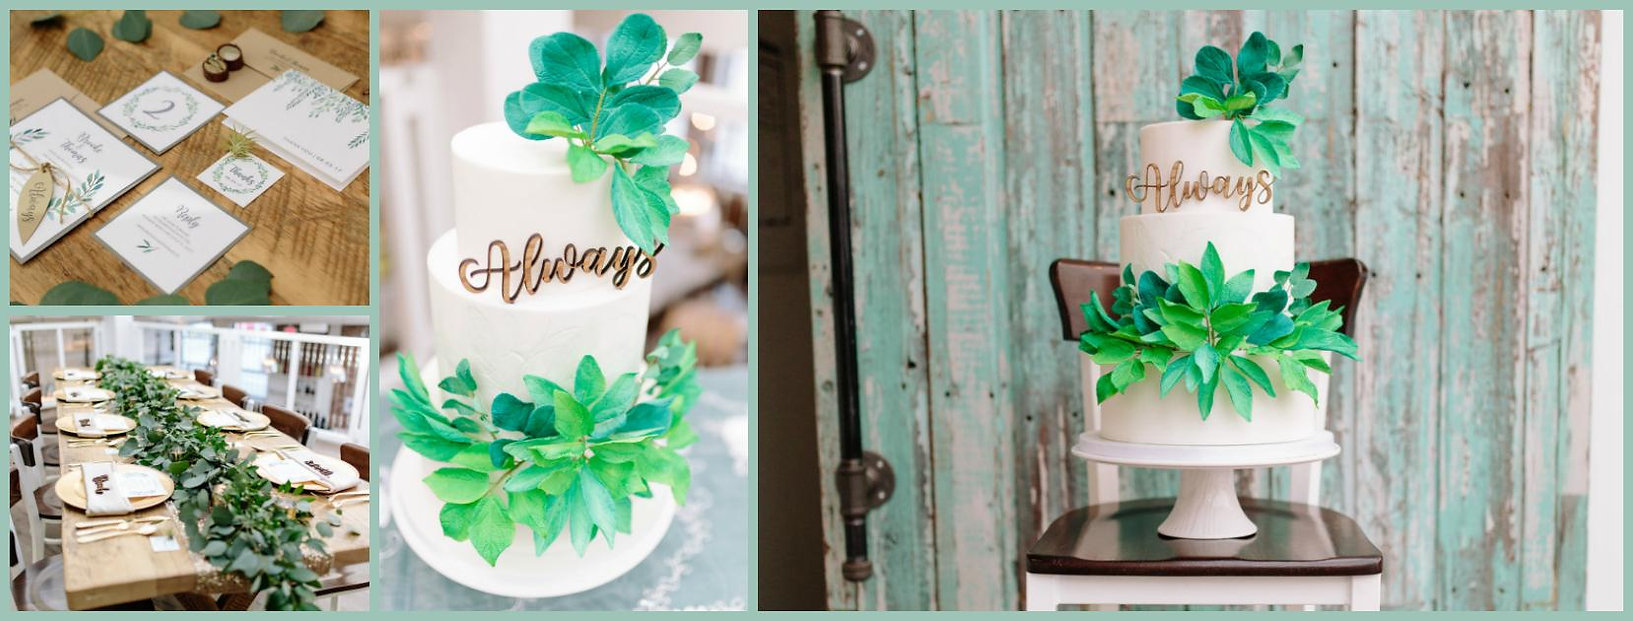 Greenery Wedding Shoot web.jpg